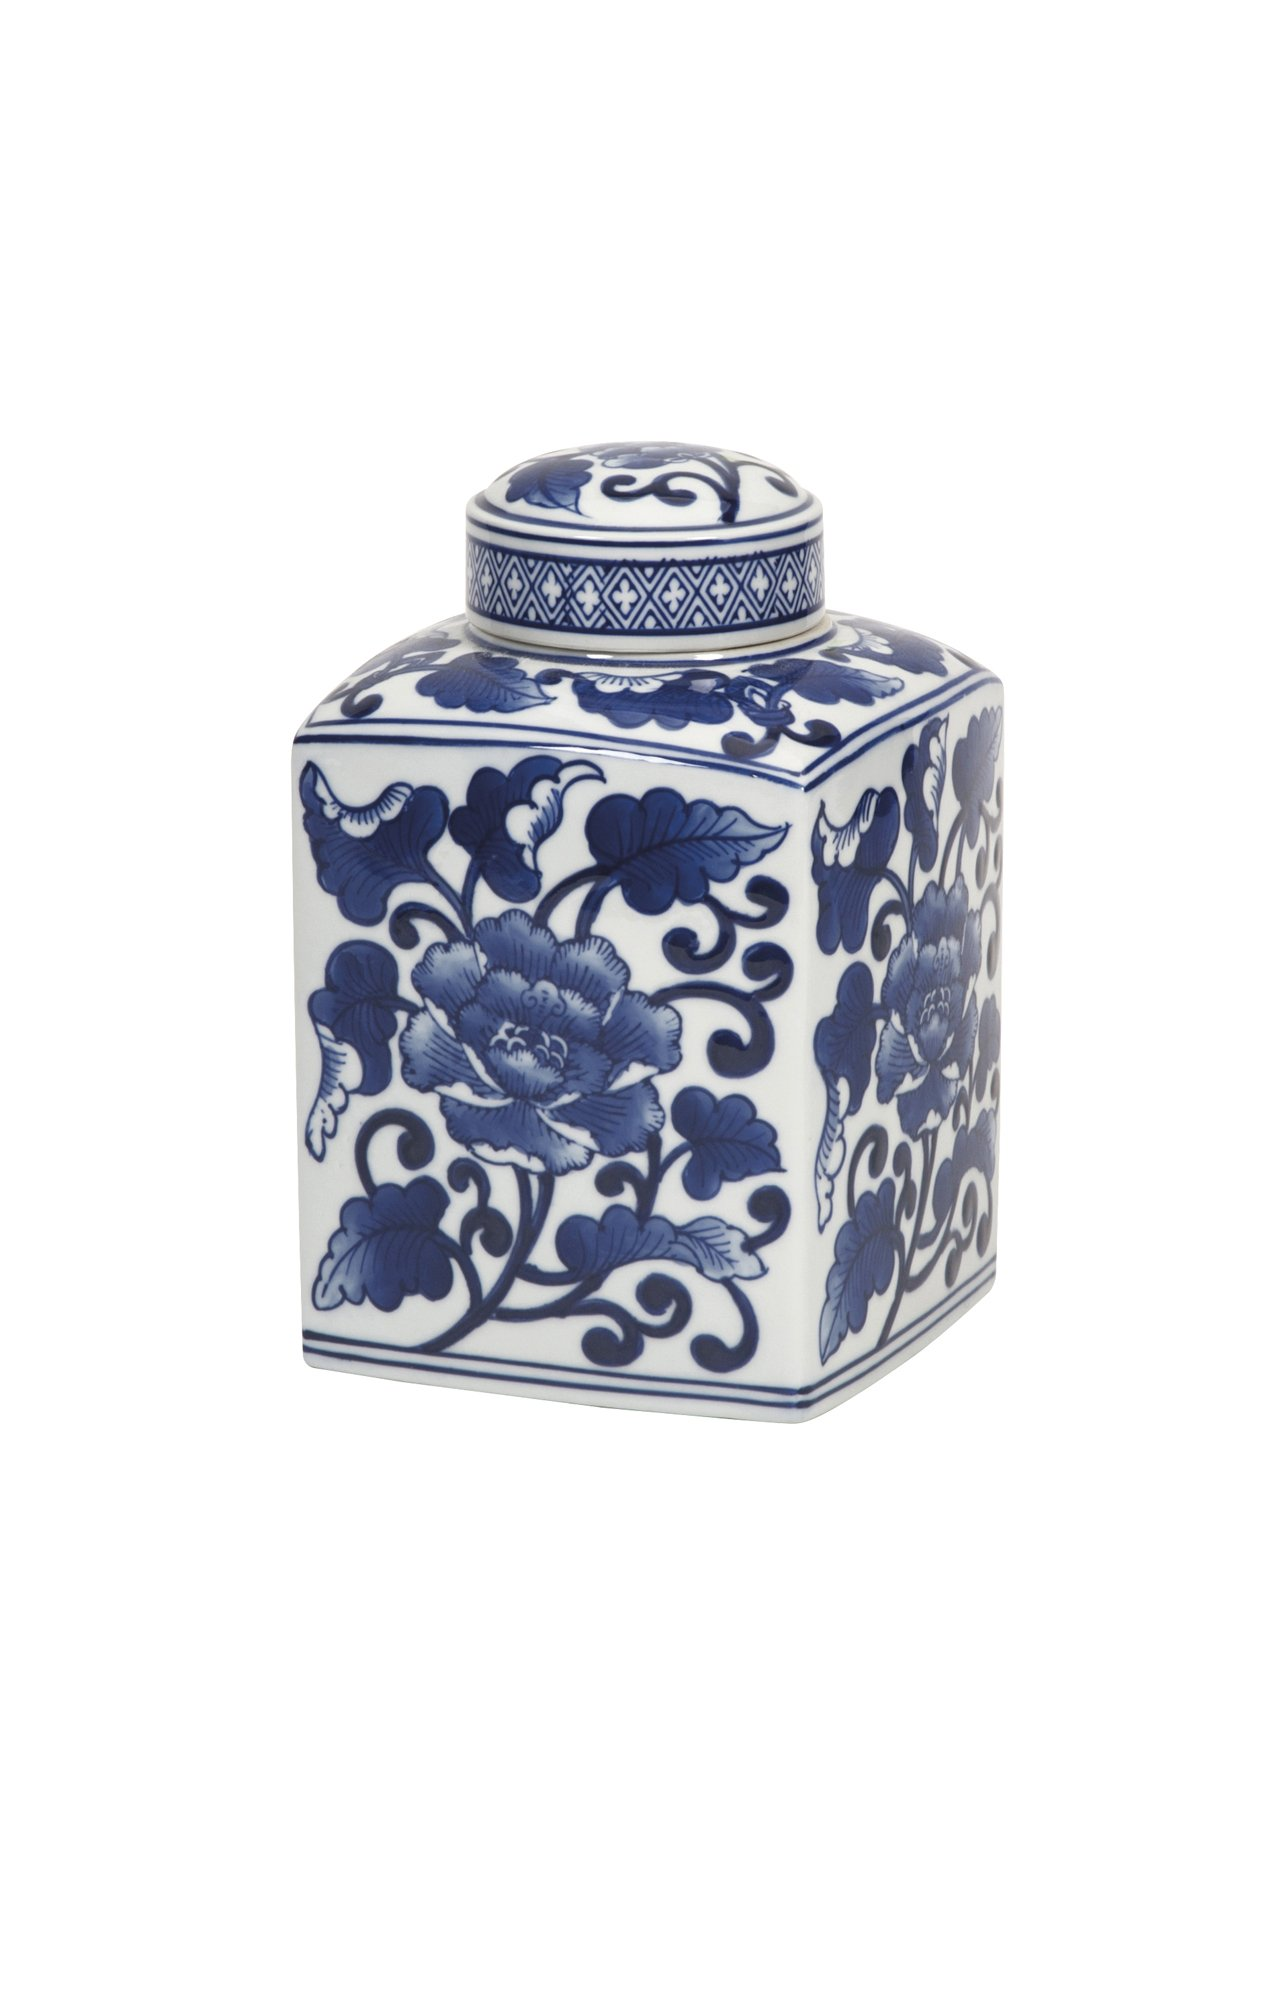 Imax 89829 Toll Mache Small Lidded Jar - Handcrafted Ceramic Canister, Lidded Kitchenware, Modern Decorative Jar. Home and Kitchen by Imax